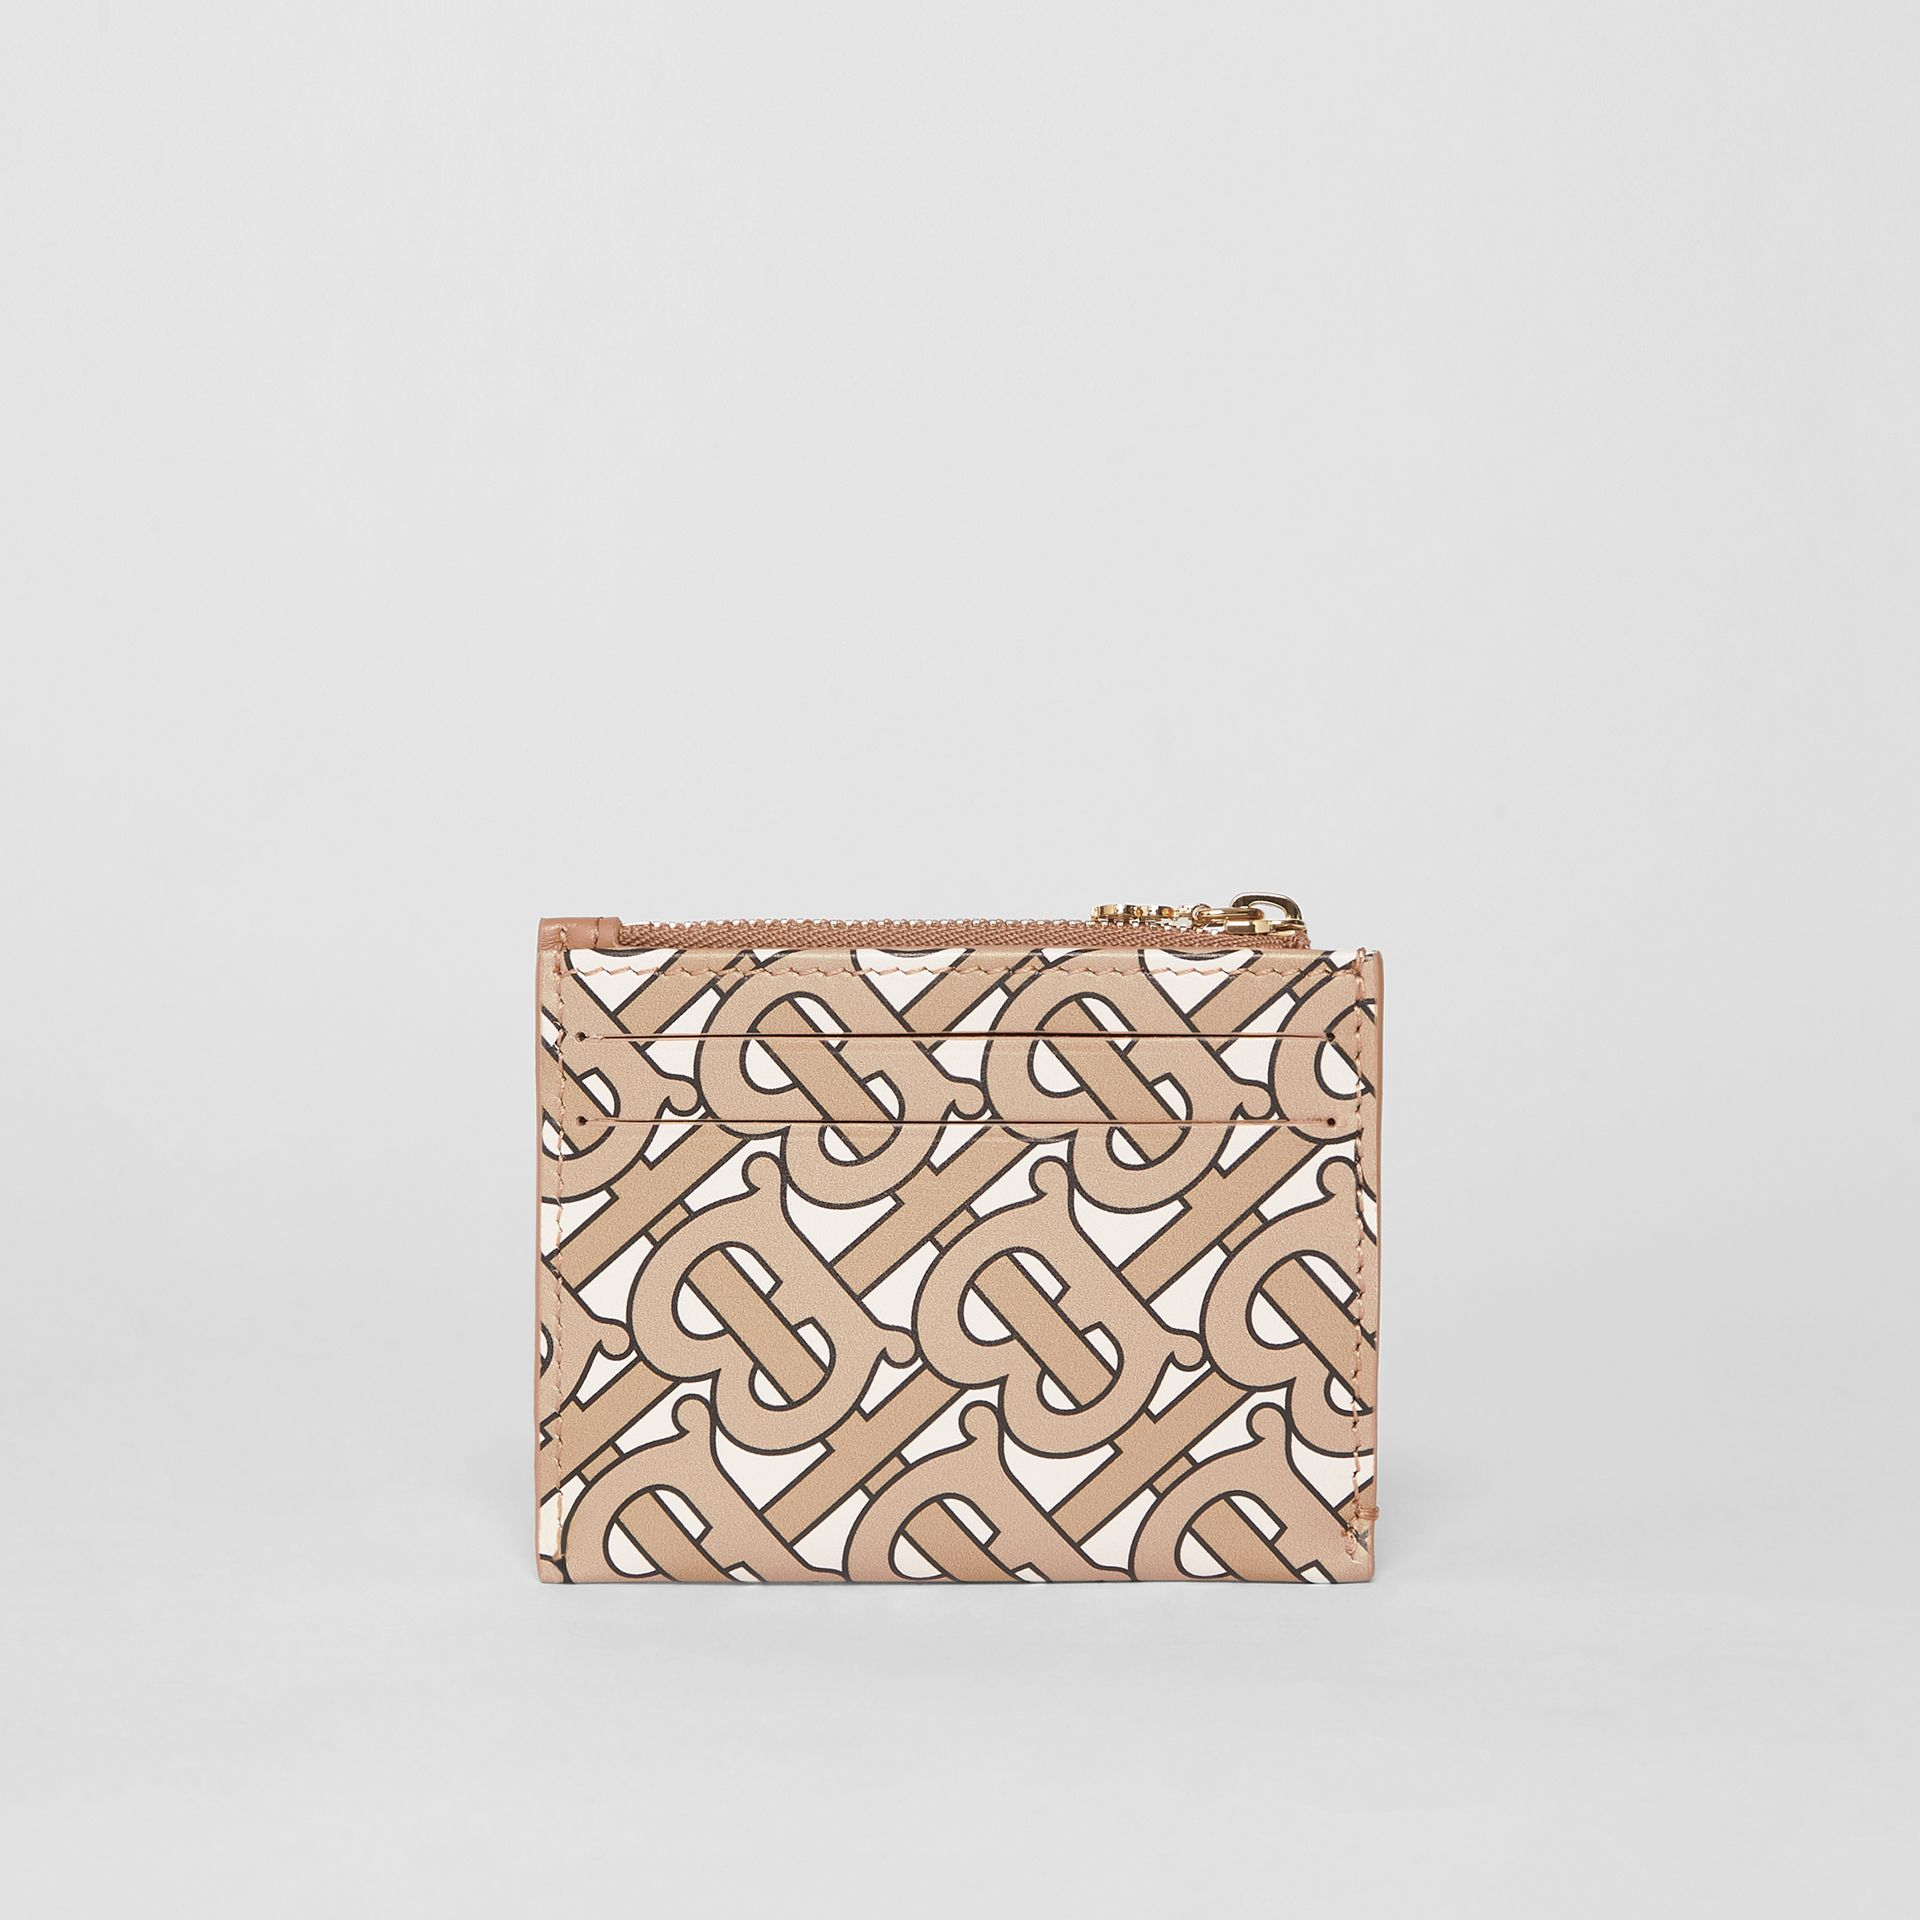 Monogram Print Leather Zip Card Case in Beige - Women | Burberry United States - gallery image 4